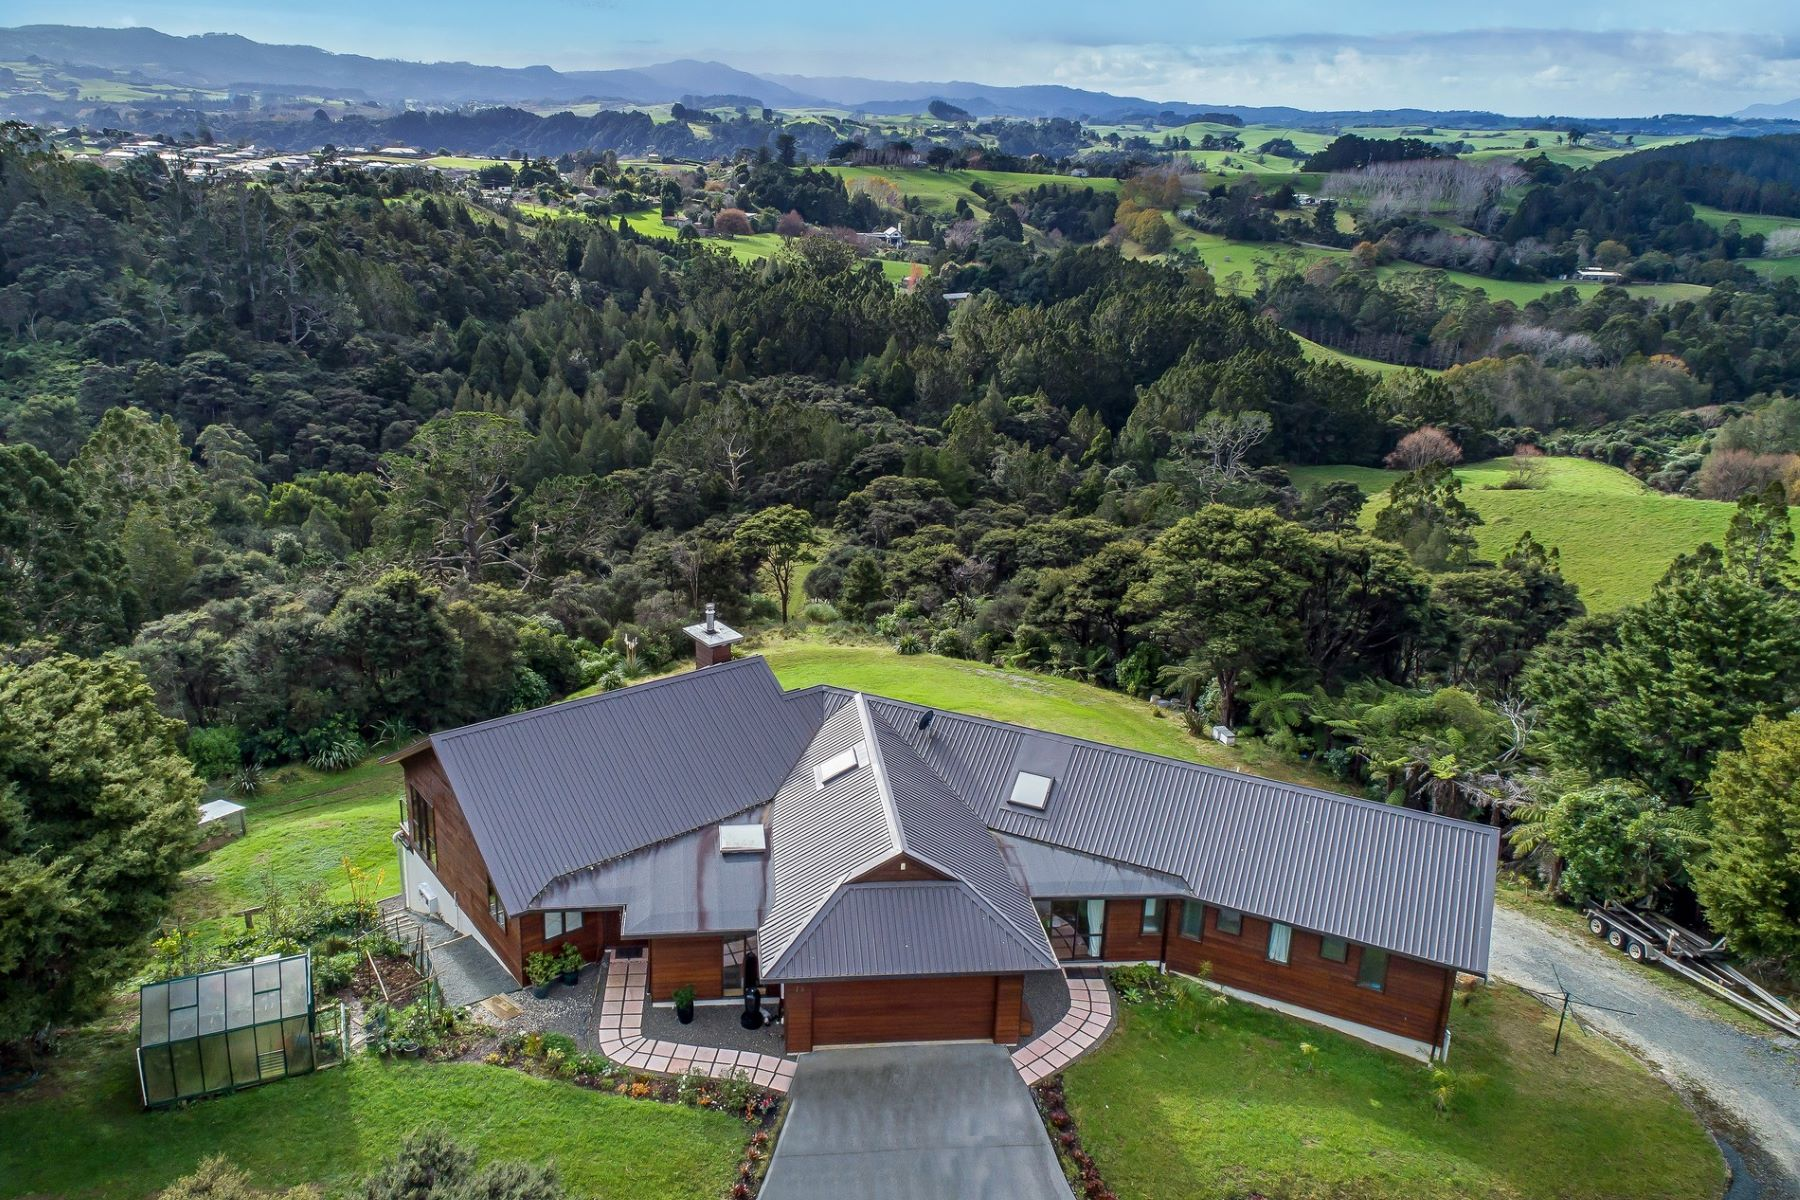 Single Family Home for Sale at Thompson Road Warkworth, Auckland, 0981 New Zealand